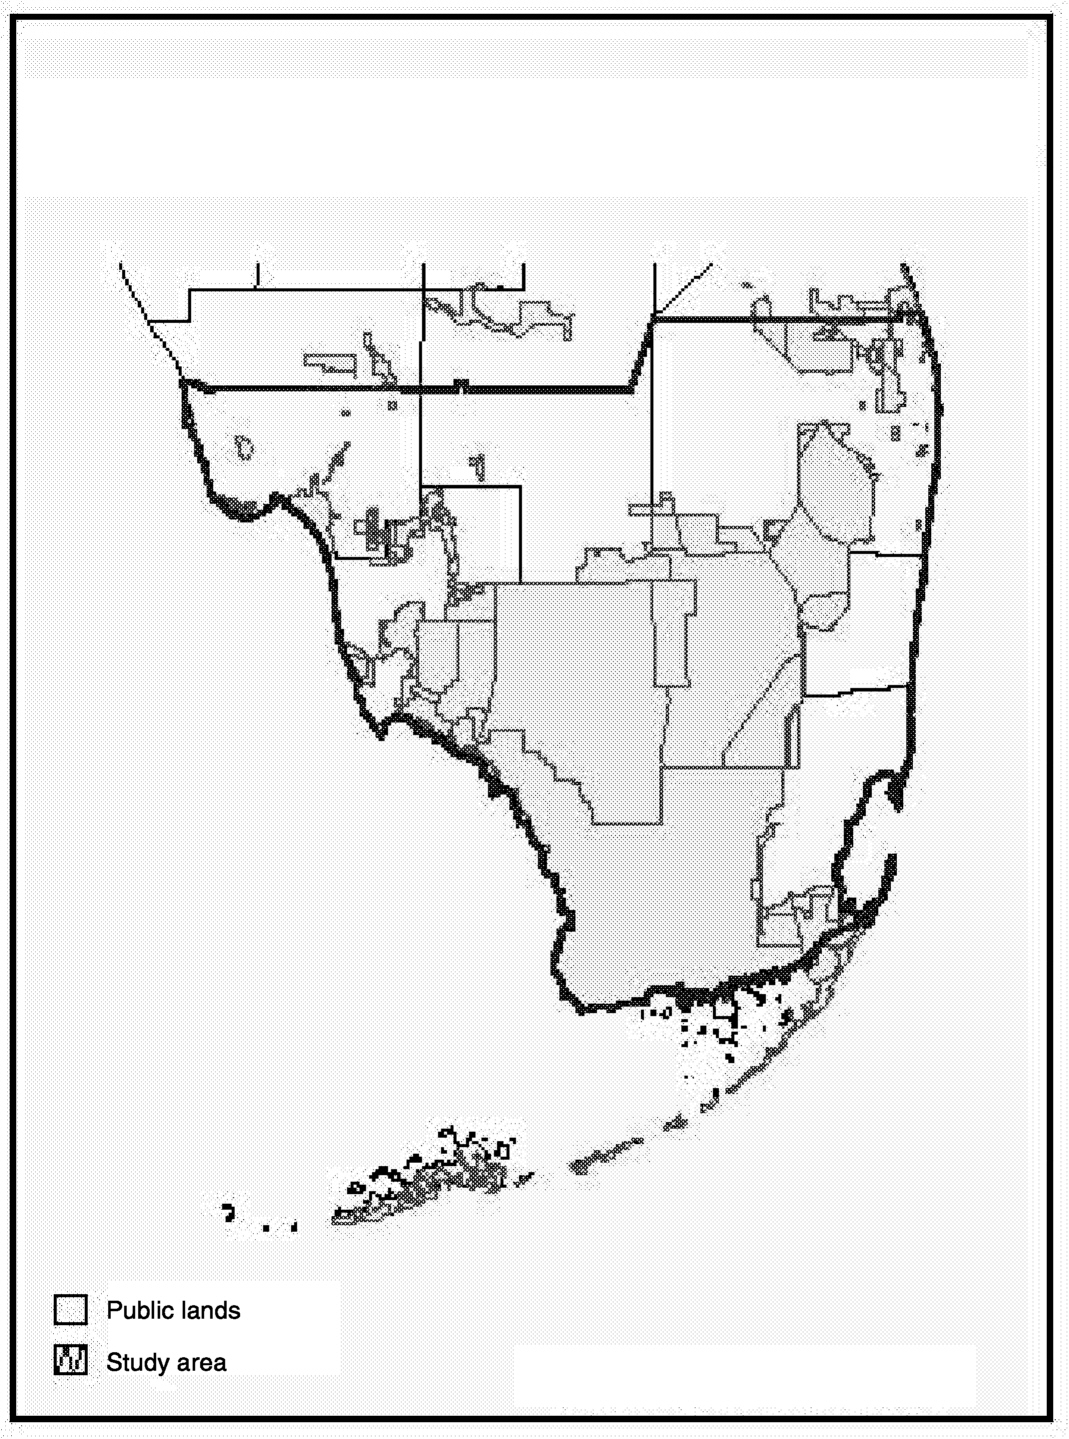 10 Transformation Of The South Florida Landscape